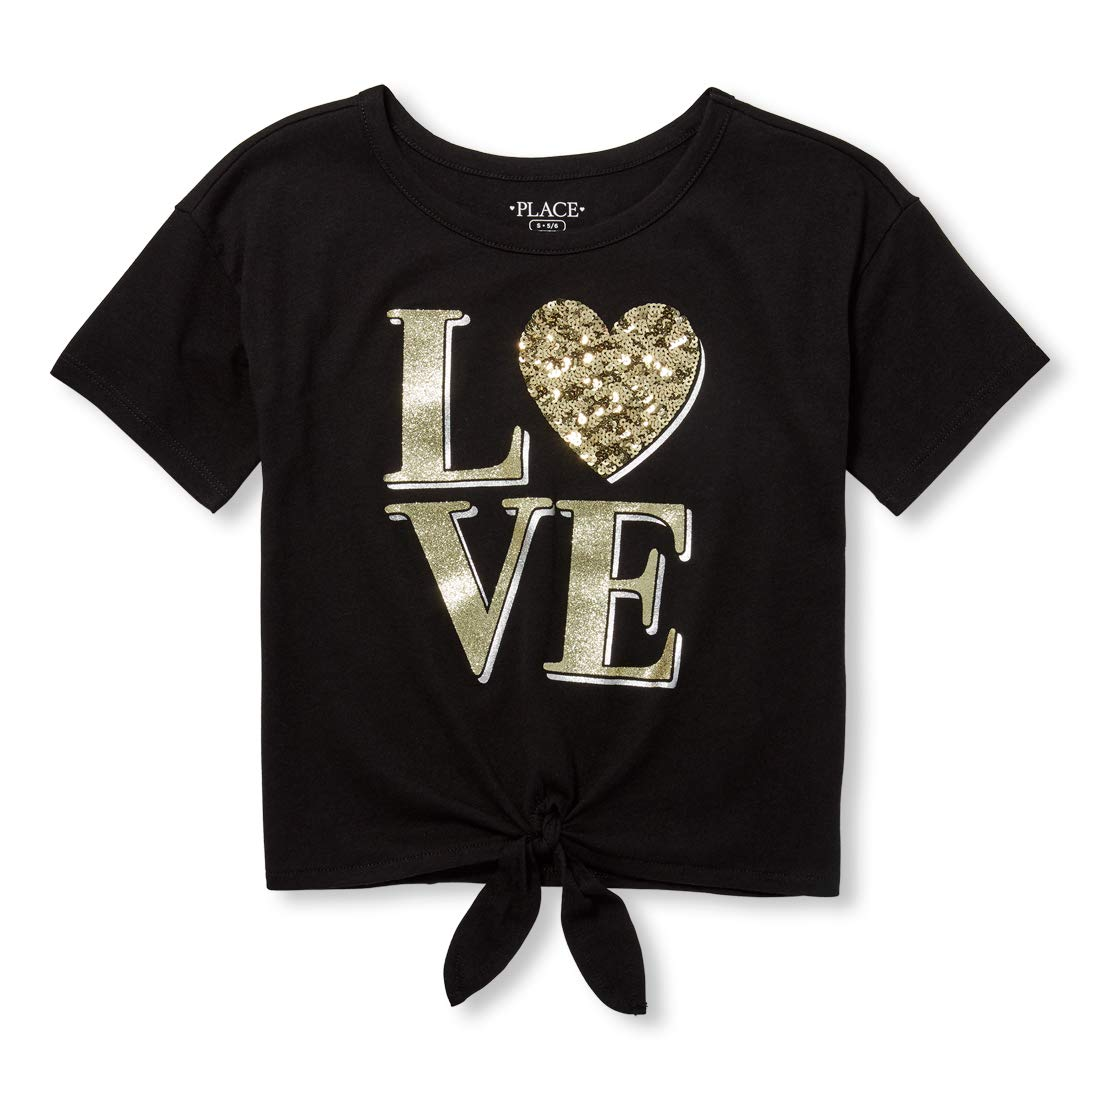 The Childrens Place Big Girls Short Sleeve Graphic Tops